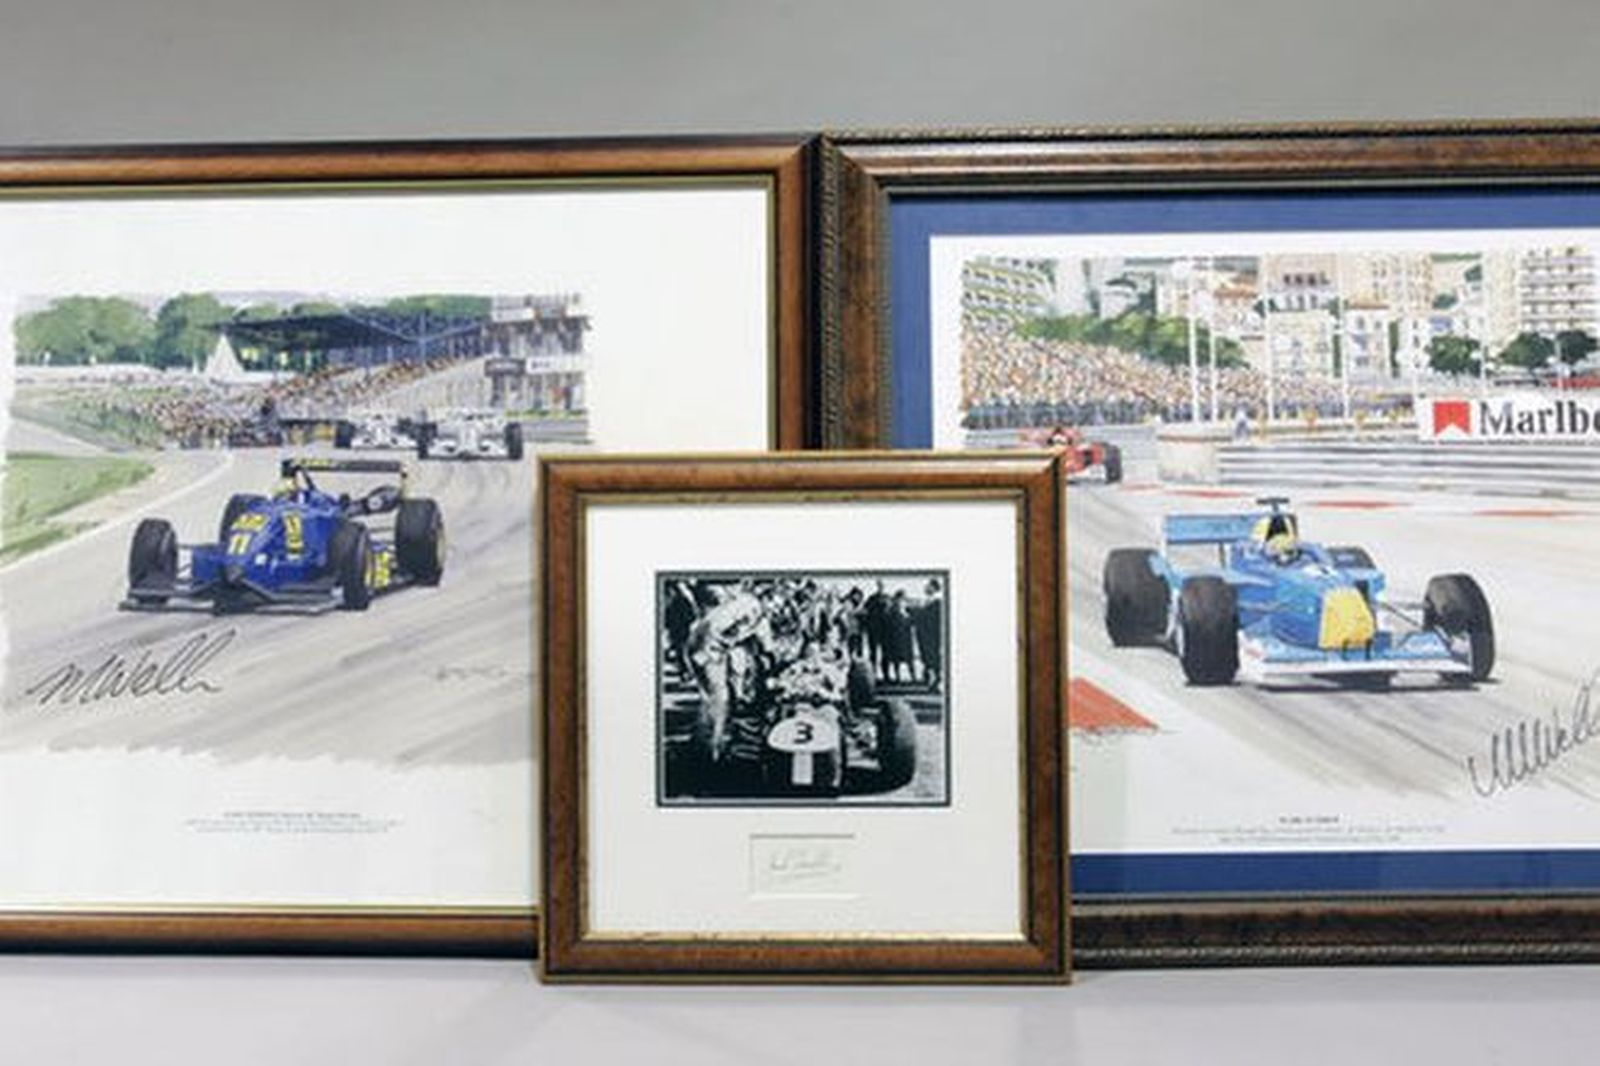 Framed Prints - 2 x Signed Mark Webber in F3000 at Brands Hatch 97 & Monaco 01 and 1x Signed Sir Jac